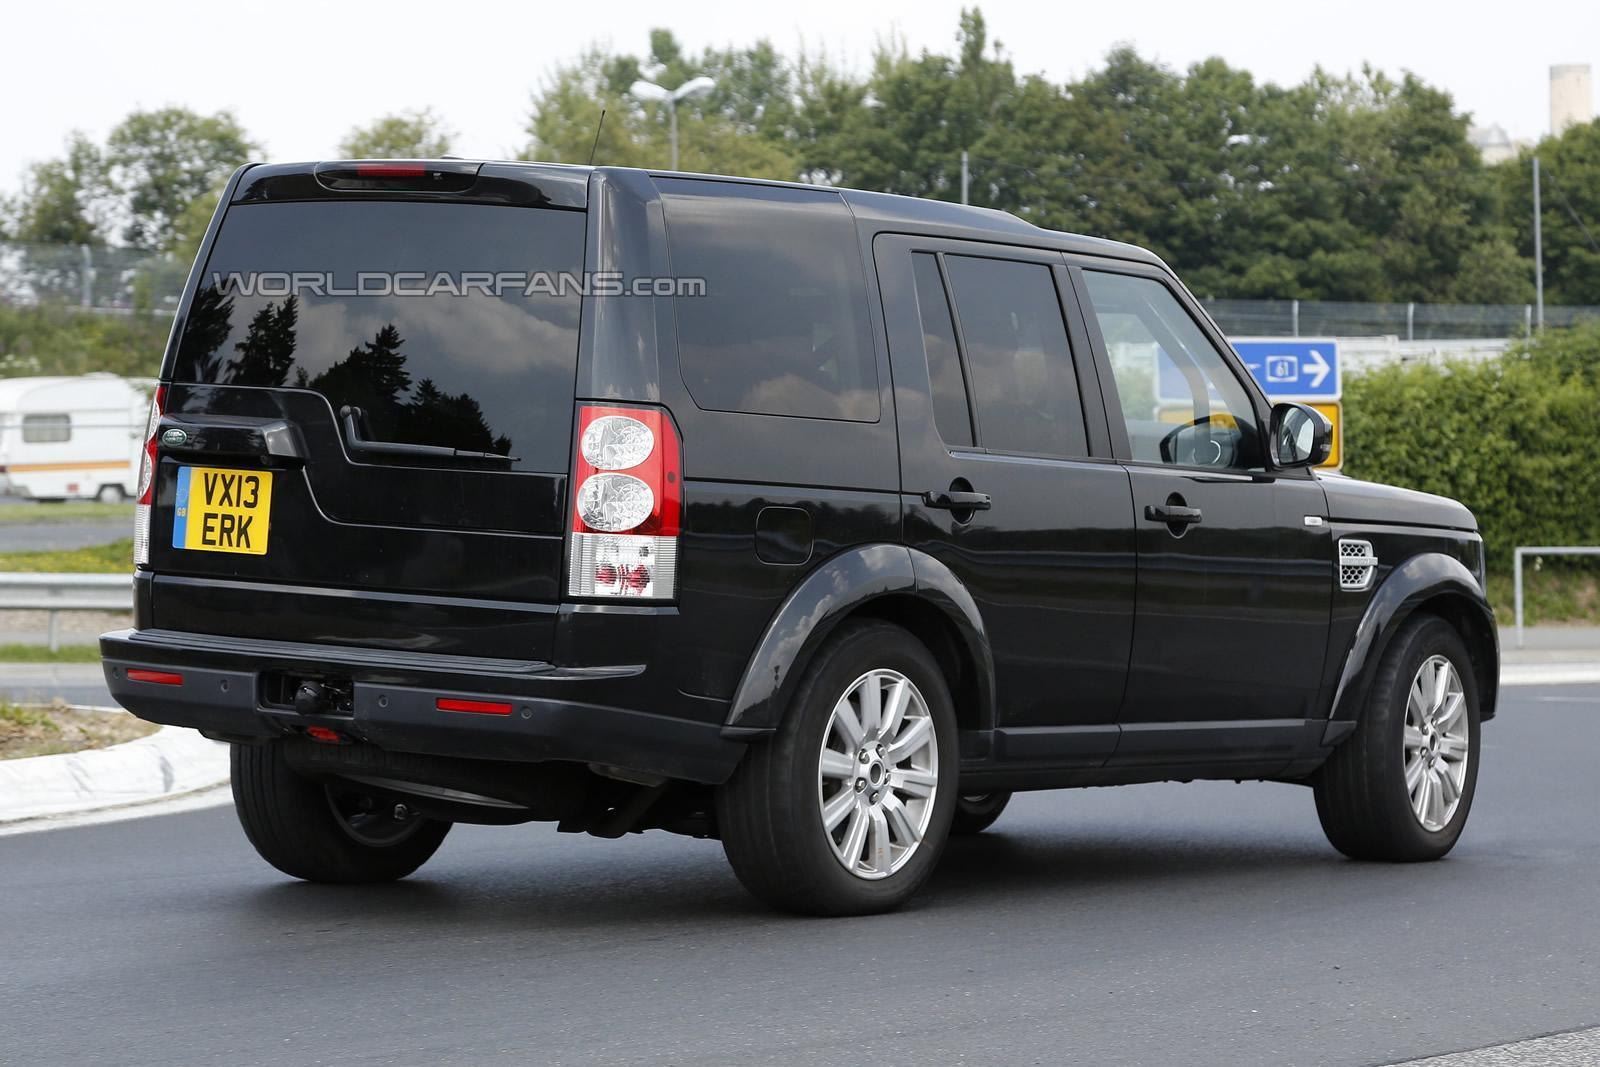 facelifted 2014 lr4 spied again the land rover center. Black Bedroom Furniture Sets. Home Design Ideas